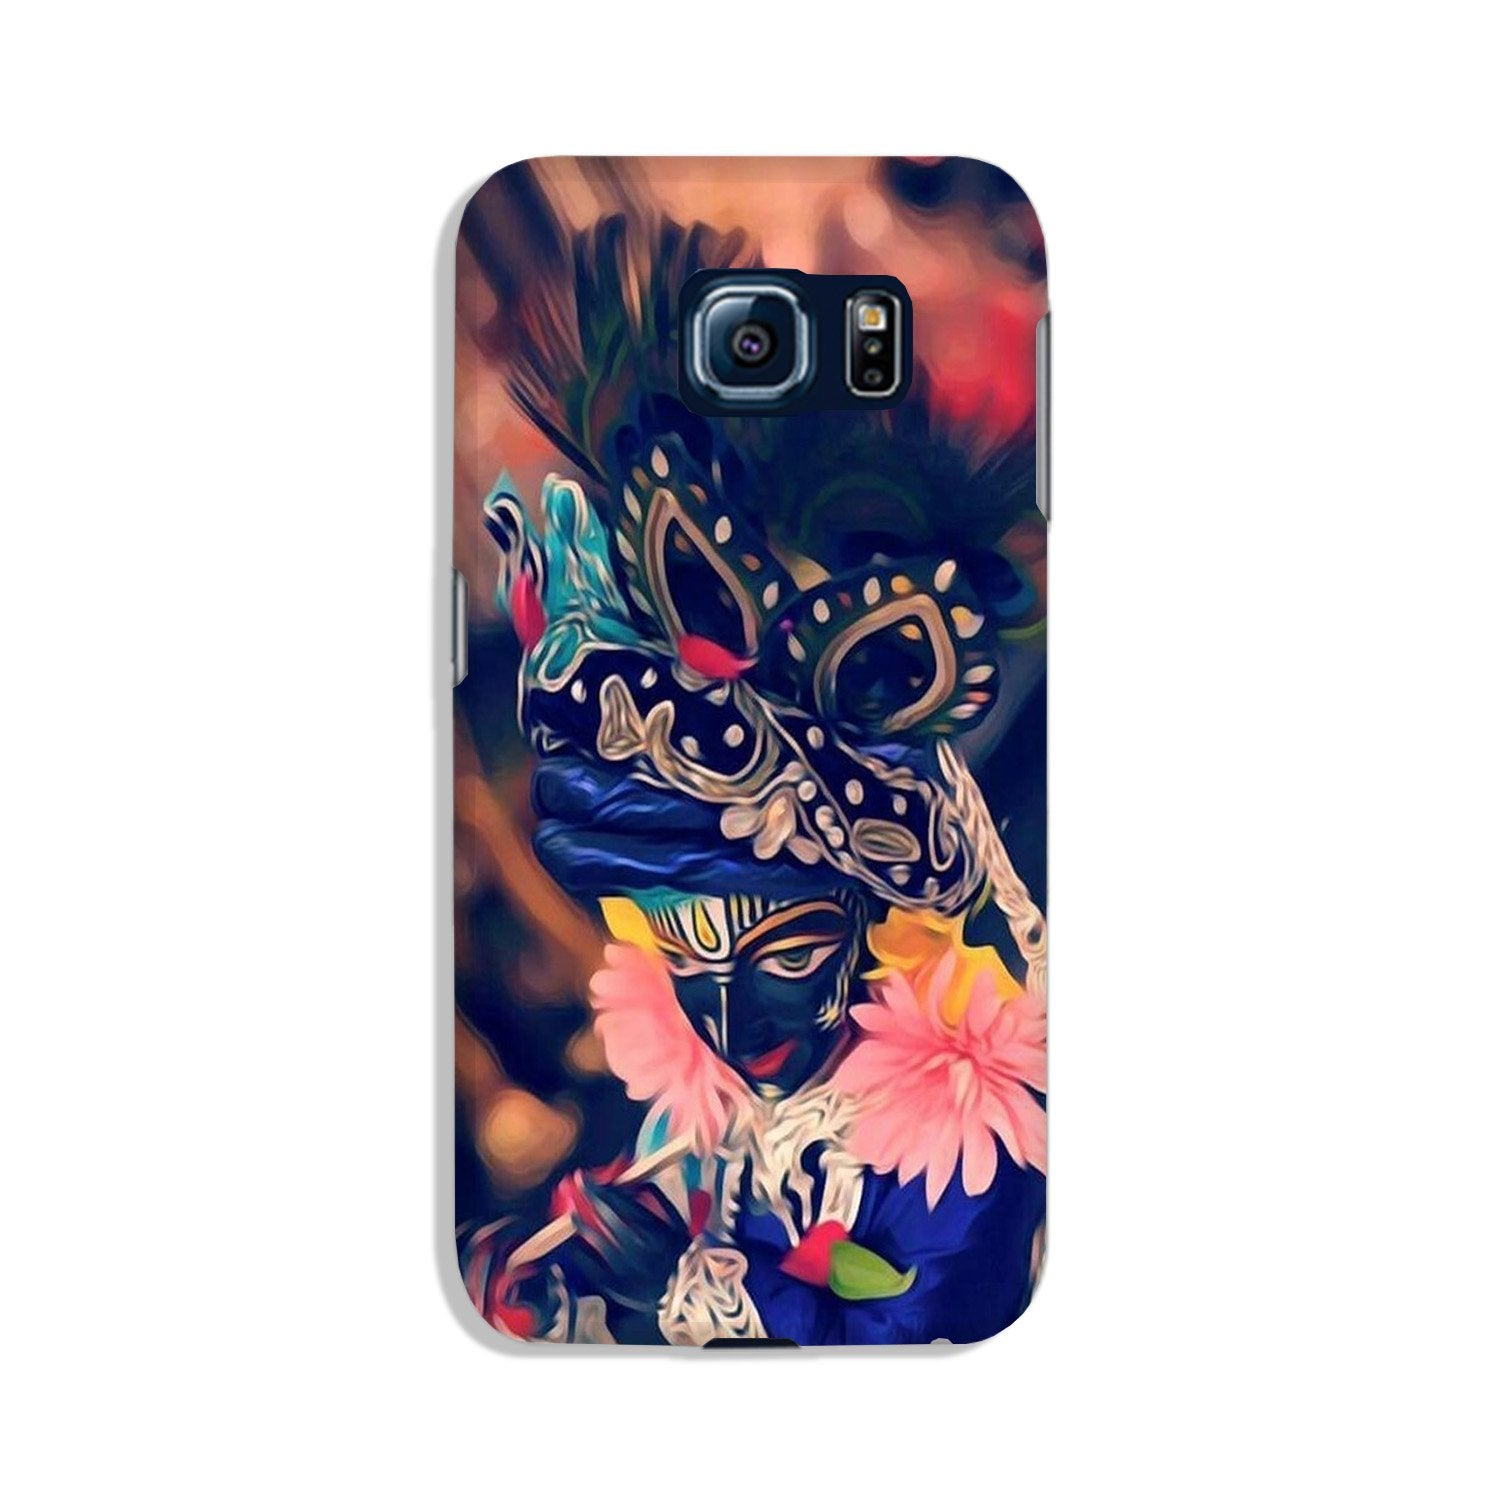 Lord Krishna Case for Galaxy S6